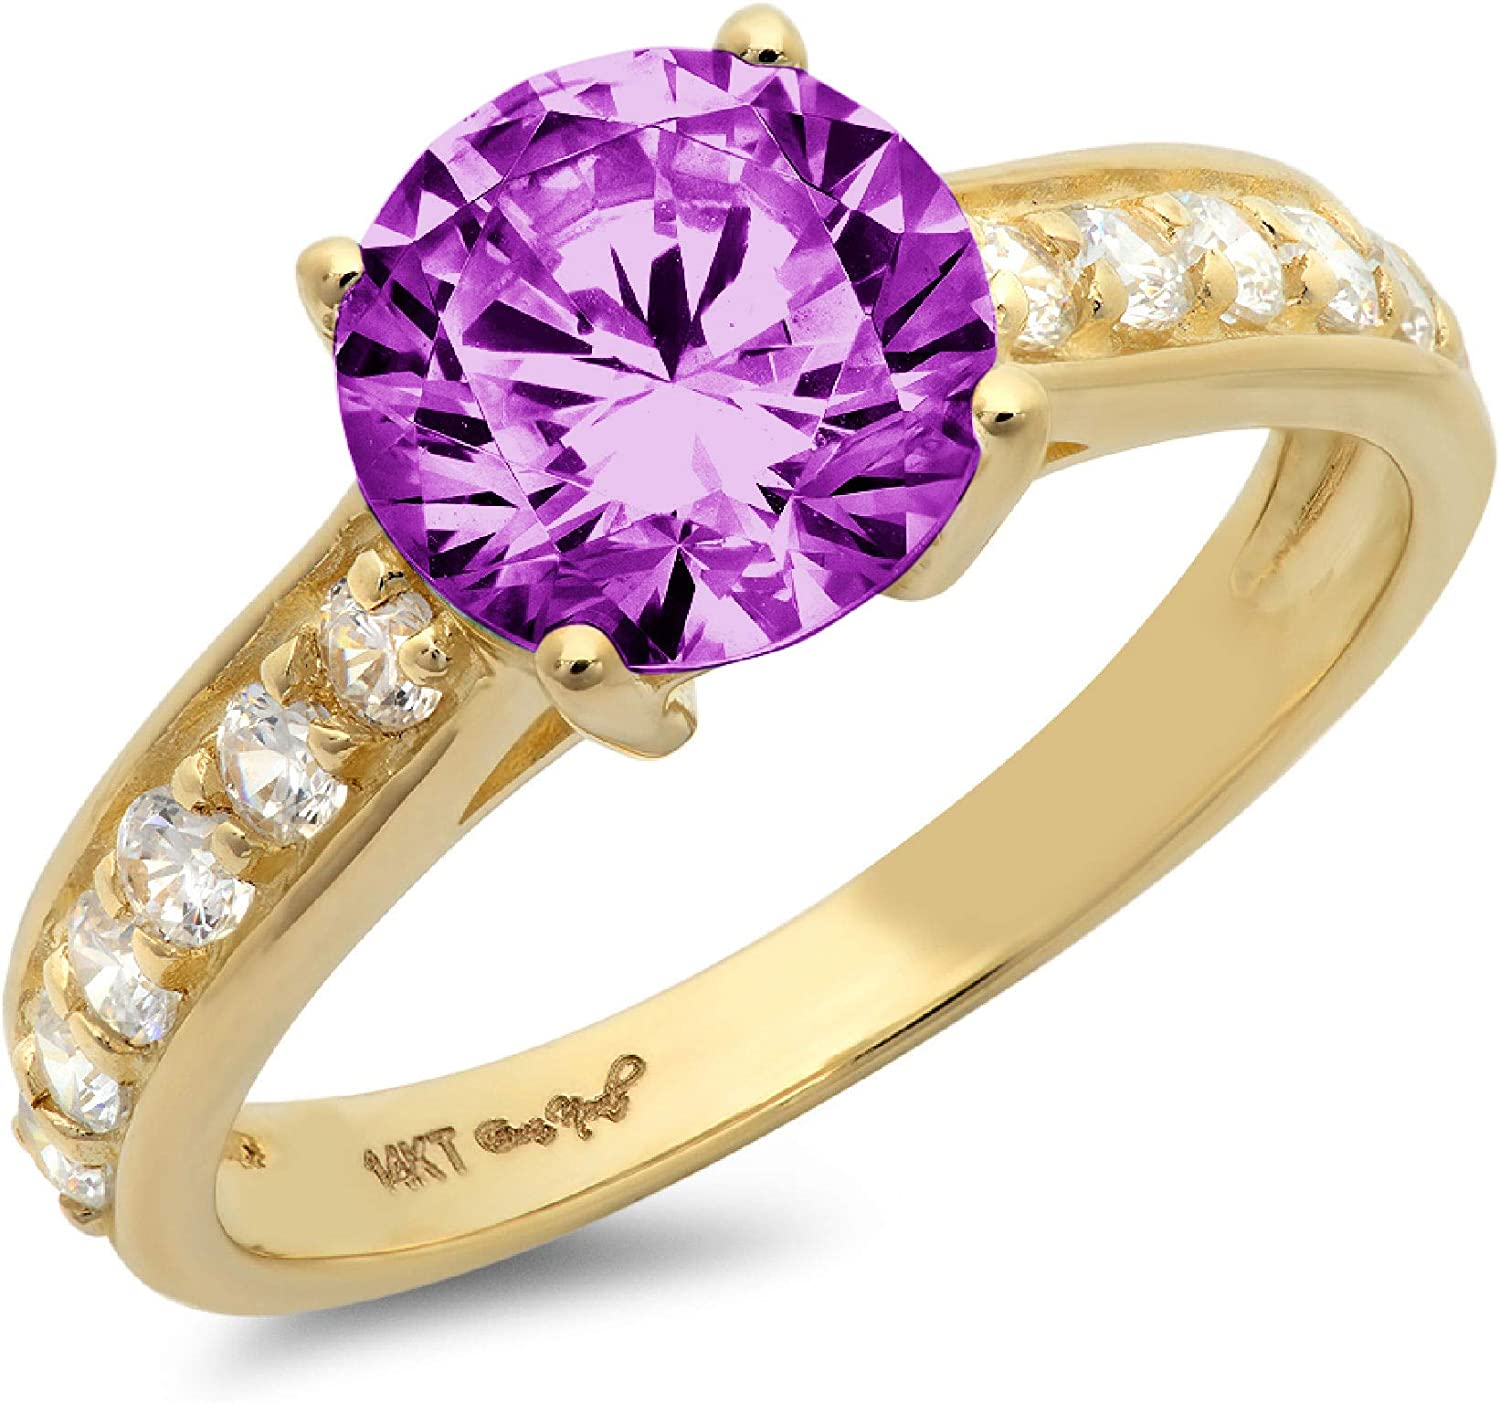 Clara Pucci 2.35 ct Brilliant Round Cut Solitaire Accent Stunning Genuine Flawless Simulated Alexandrite Gem Designer Modern Statement Ring Solid 18K Yellow Gold